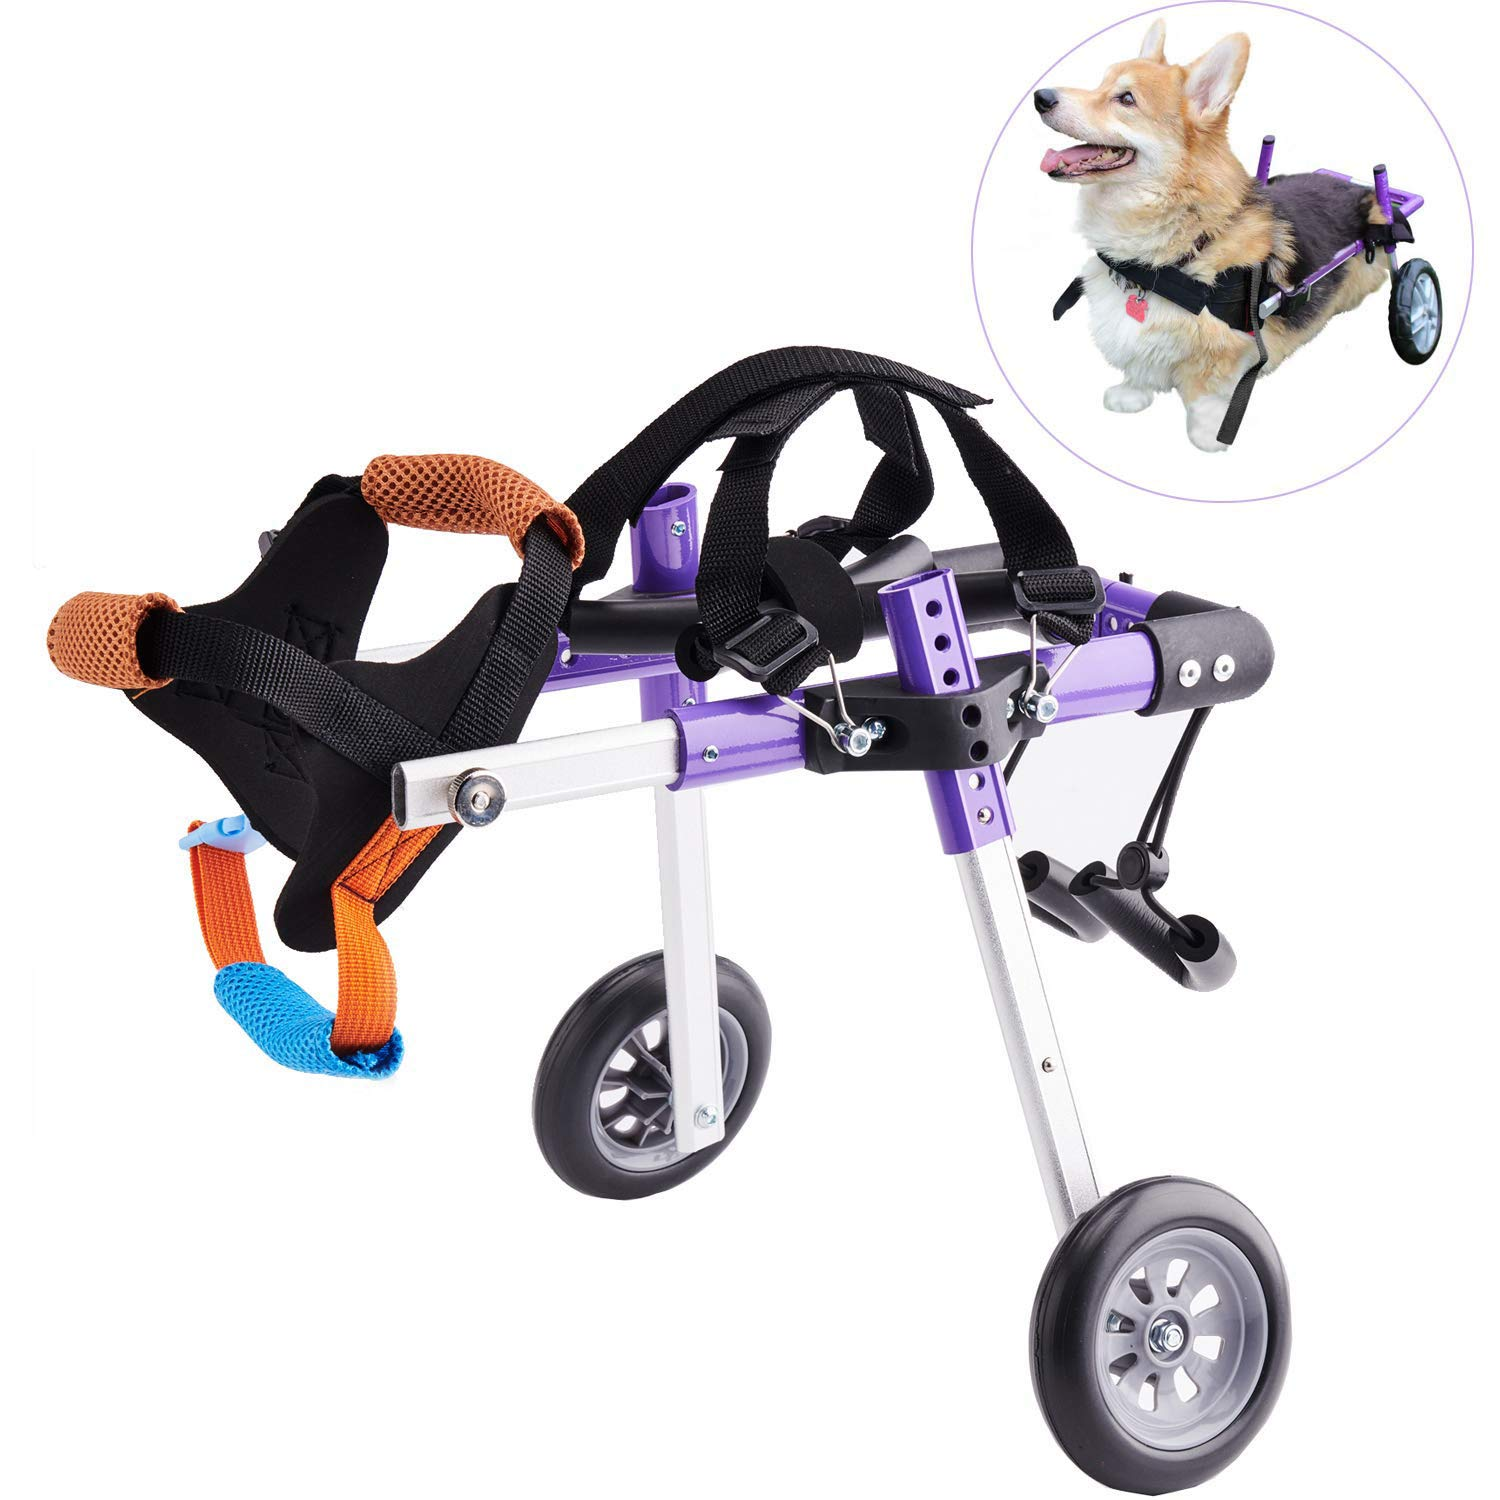 Apstour Dog Wheelchair Pet Hip Joint Care Wheelchair 10inch Wheel 2 Wheels Cart for Hind Legs Rehabilitation,Pet Wheelchair, Hind Legs Rehabilitation,Dog Cart (XS) by Apstour